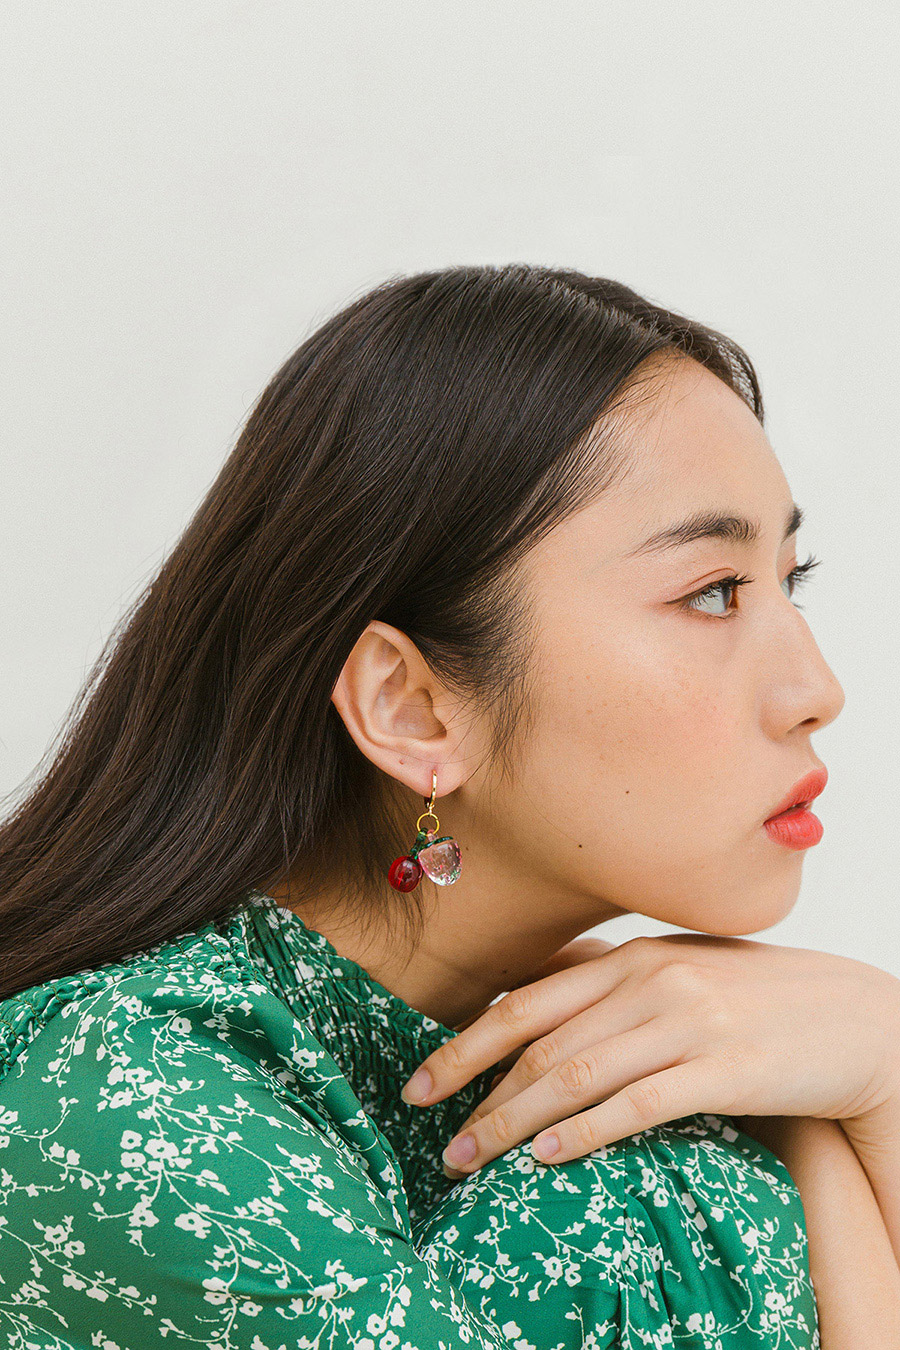 FRUITIE EARRING - CHERRY BERRY [BY MODPARADE]